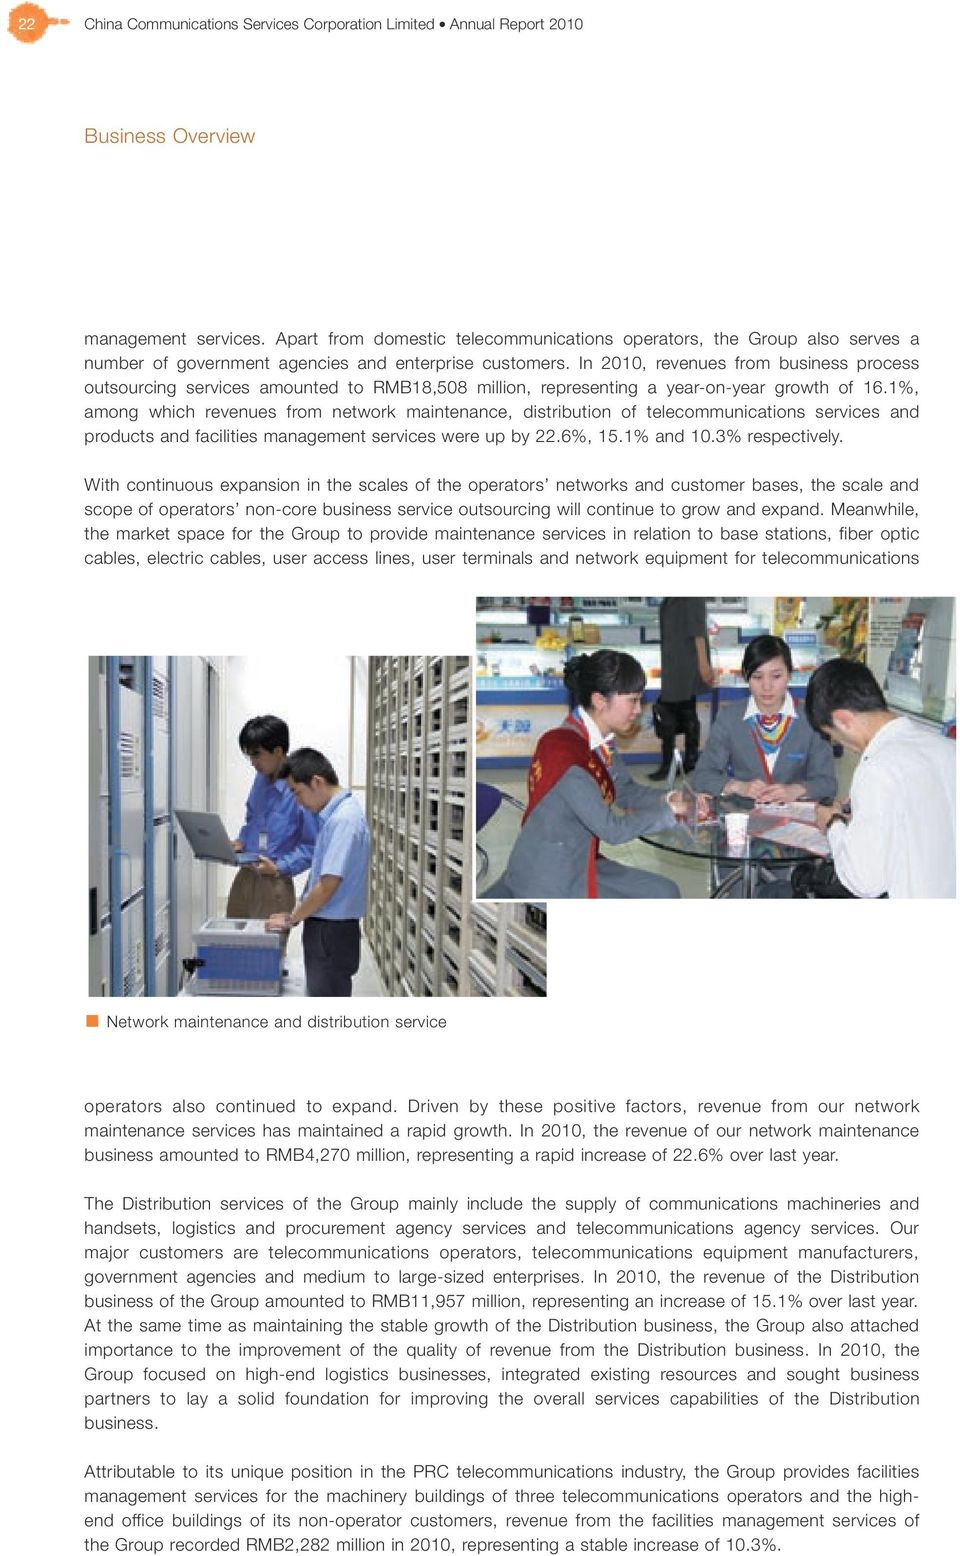 In 2010, revenues from business process outsourcing services amounted to RMB18,508 million, representing a year-on-year growth of 16.